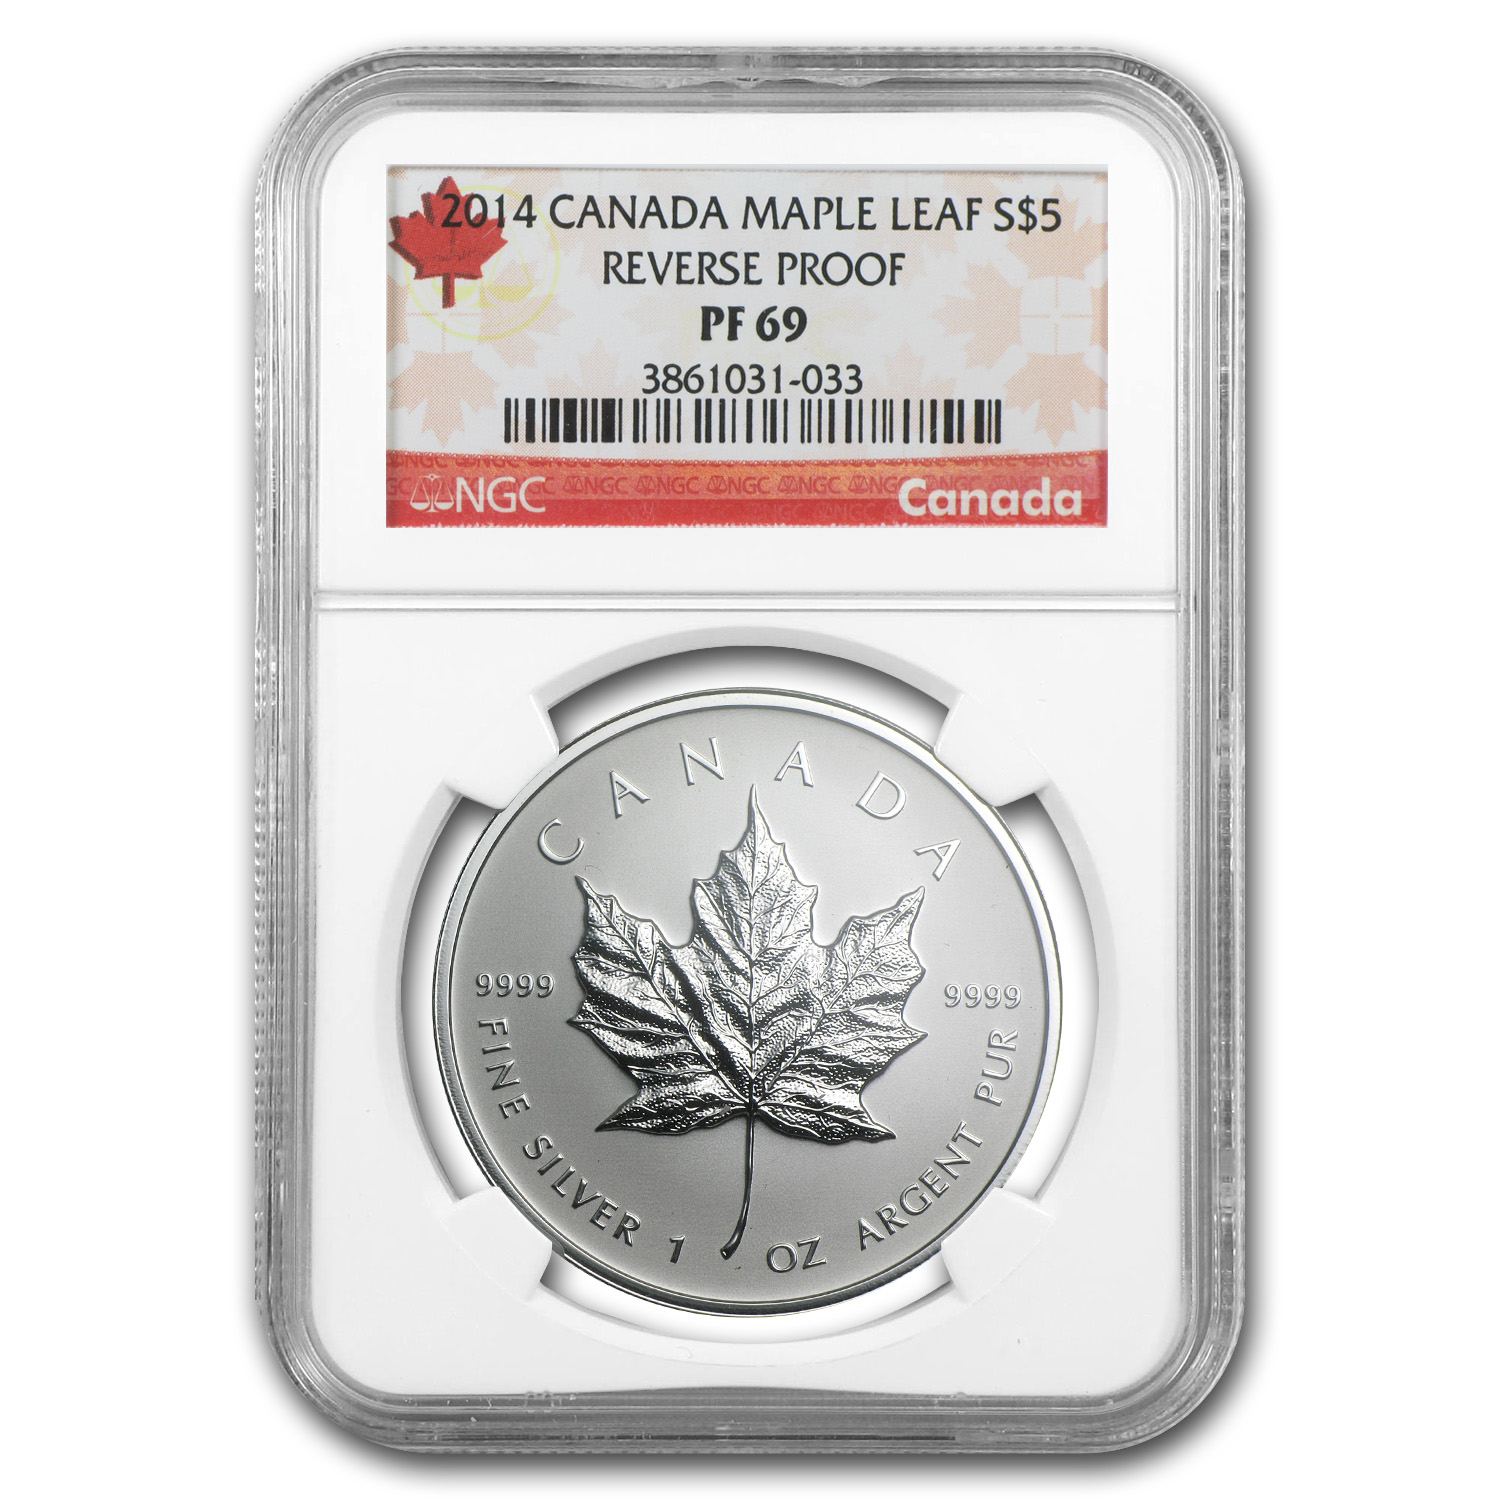 2014 Canada 1 oz Reverse Proof Silver Maple Leaf PF-69 NGC